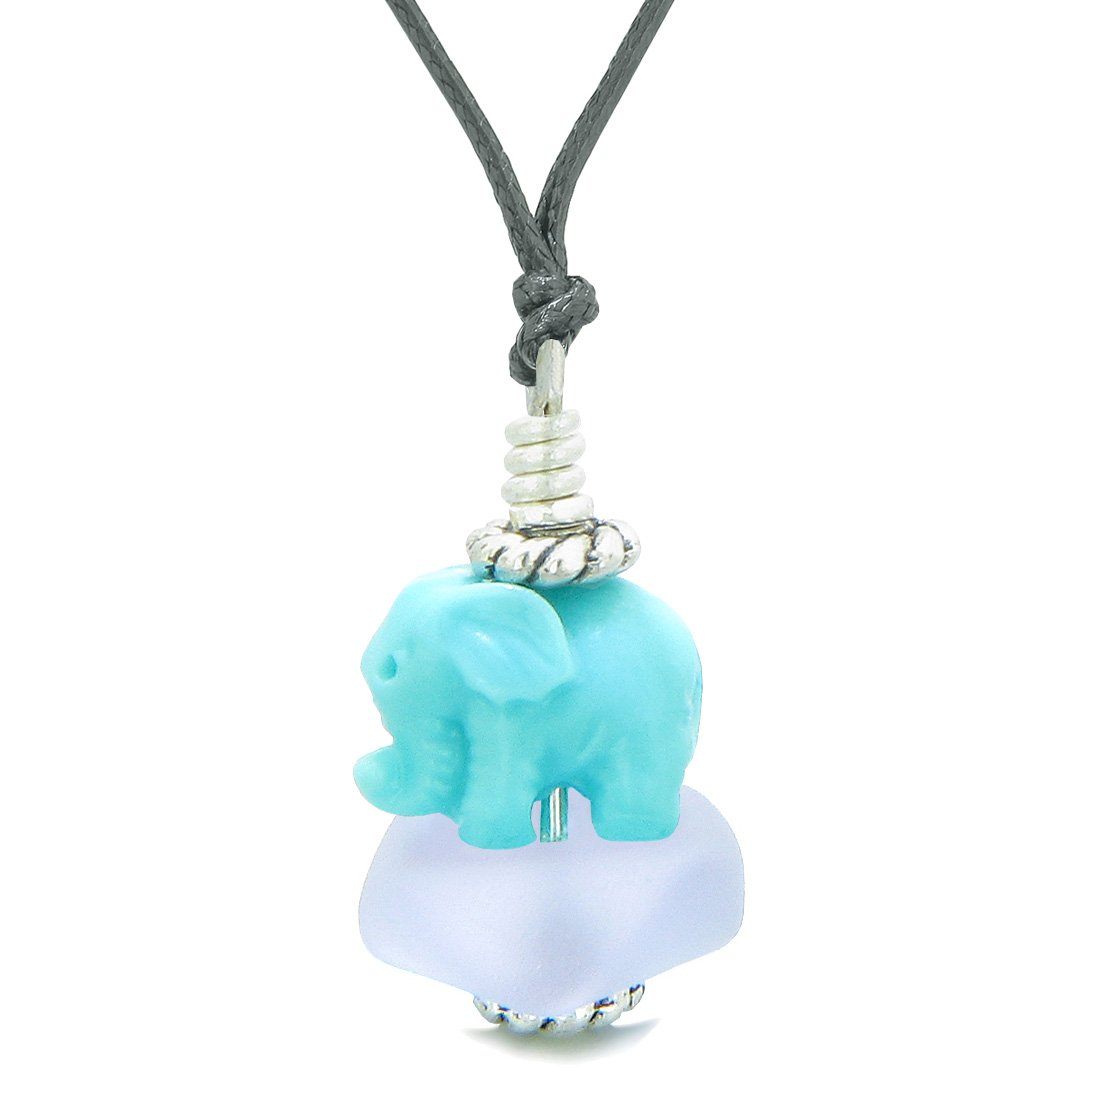 Sea Glass Pastel Purple Frosted Cloud Celeste Elephant Lucky Charm Magic Amulet Pendant Adjustable Necklace